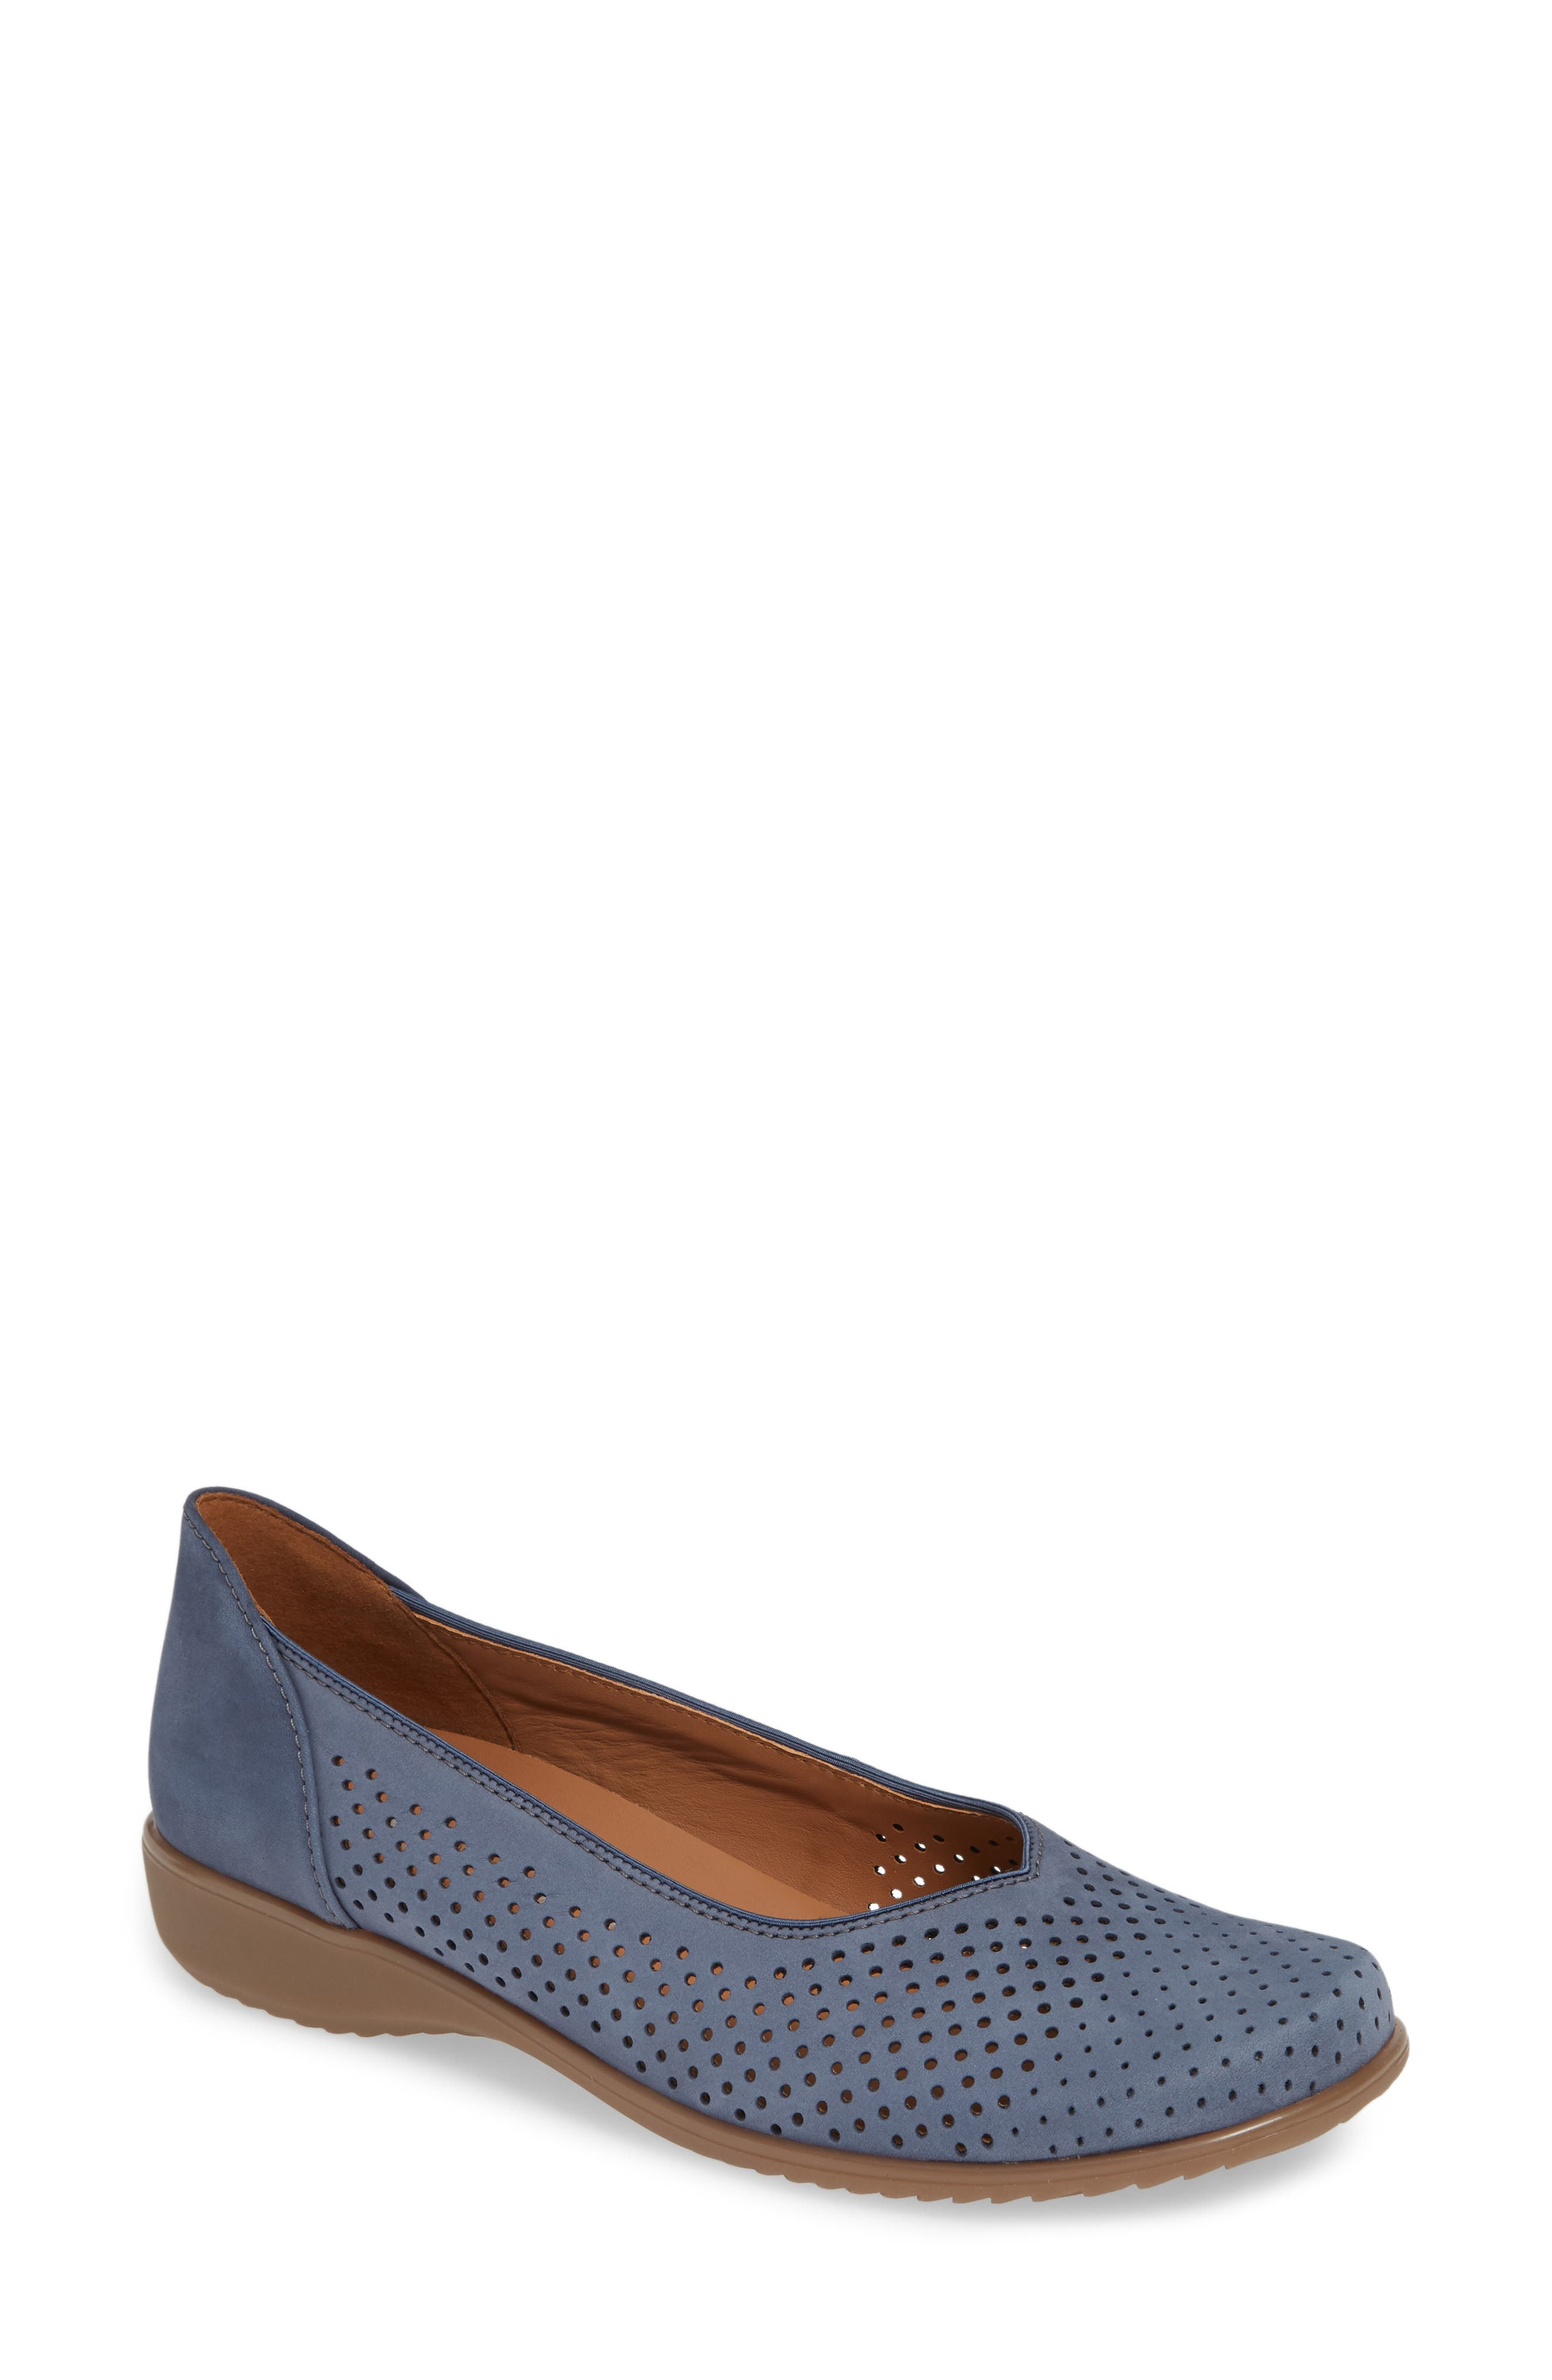 ARA,                             Avril Perforated Flat,                             Main thumbnail 1, color,                             JEANS NUBUCK LEATHER